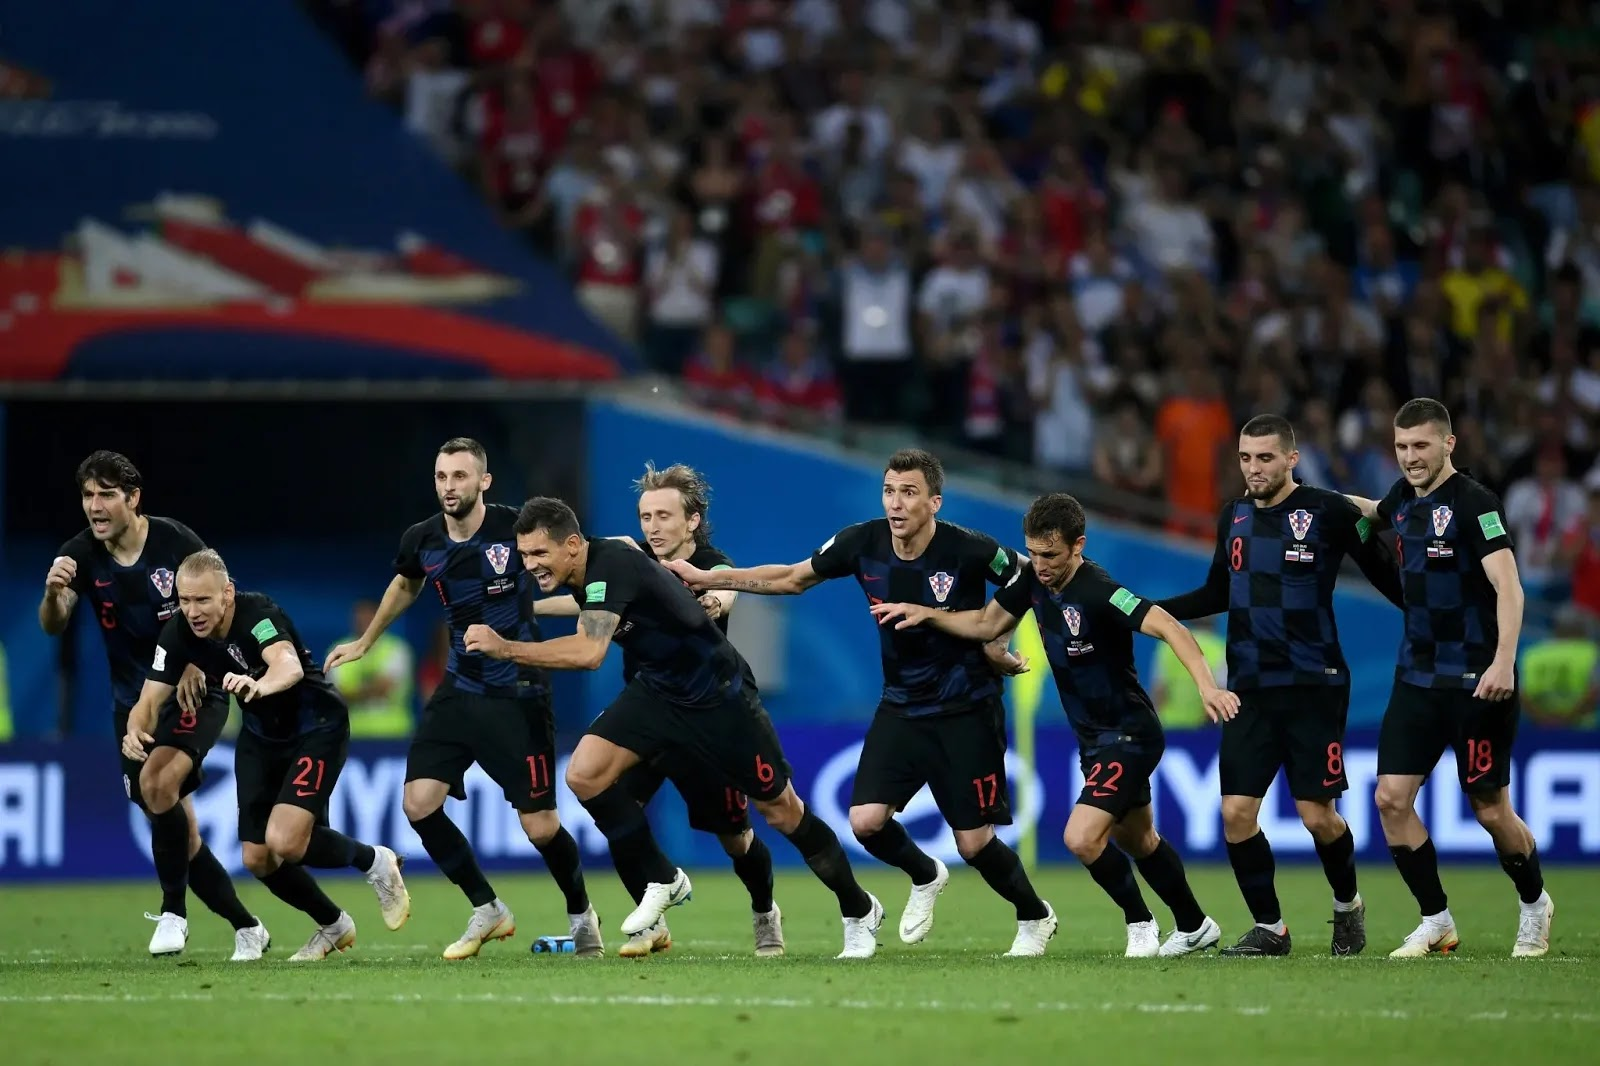 World Cup: Croatia Beats Russia On Penalties After Enthralling 2-2 Draw To Reach Semi-Finals